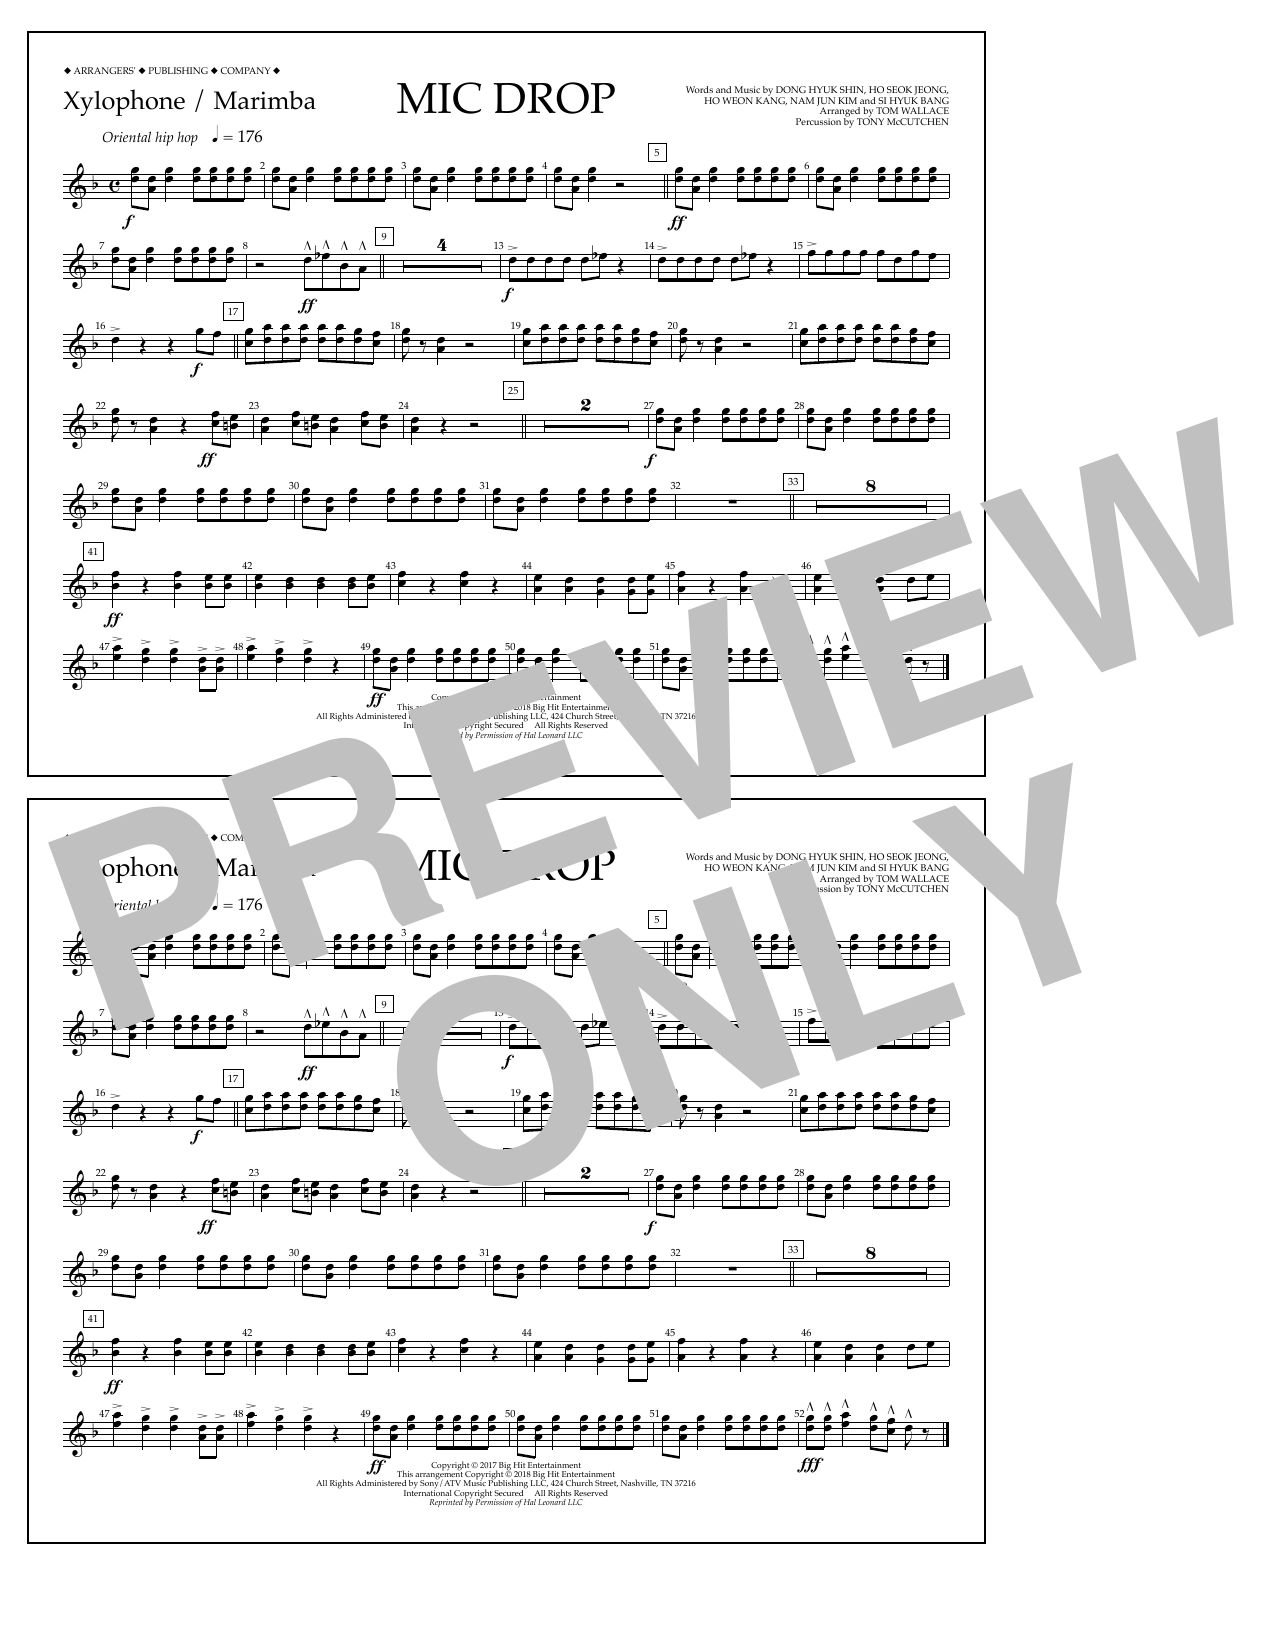 Download Tom Wallace 'Mic Drop - Xylophone/Marimba' Digital Sheet Music Notes & Chords and start playing in minutes